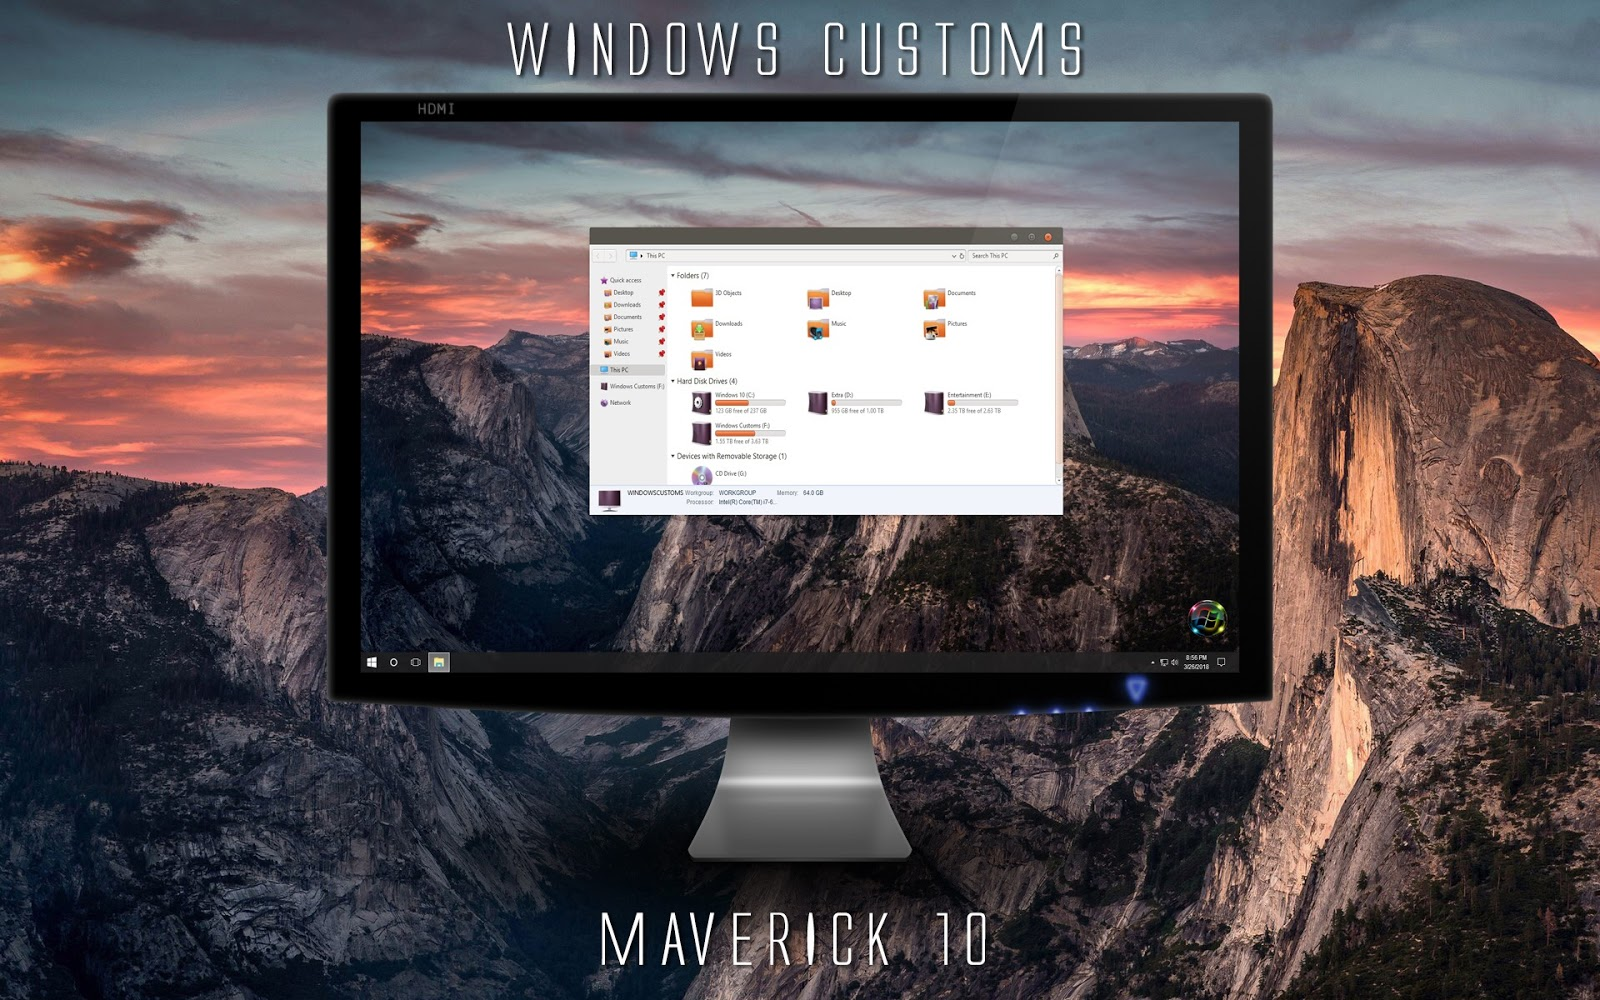 Windows Customs: Maverick 10